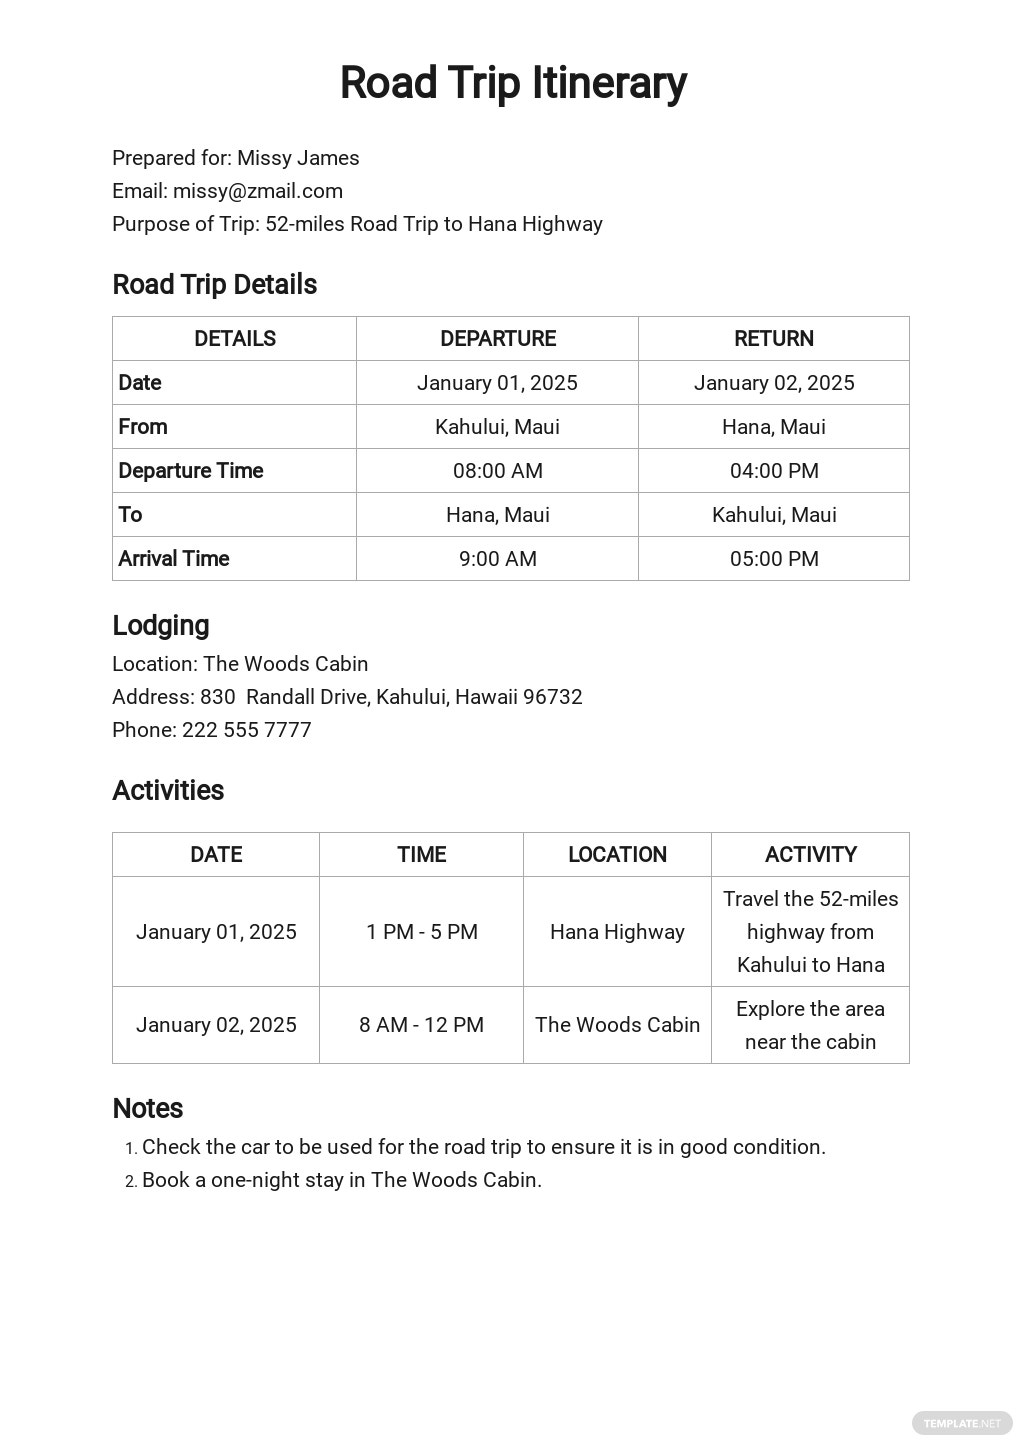 Best Road Trip Itinerary Template